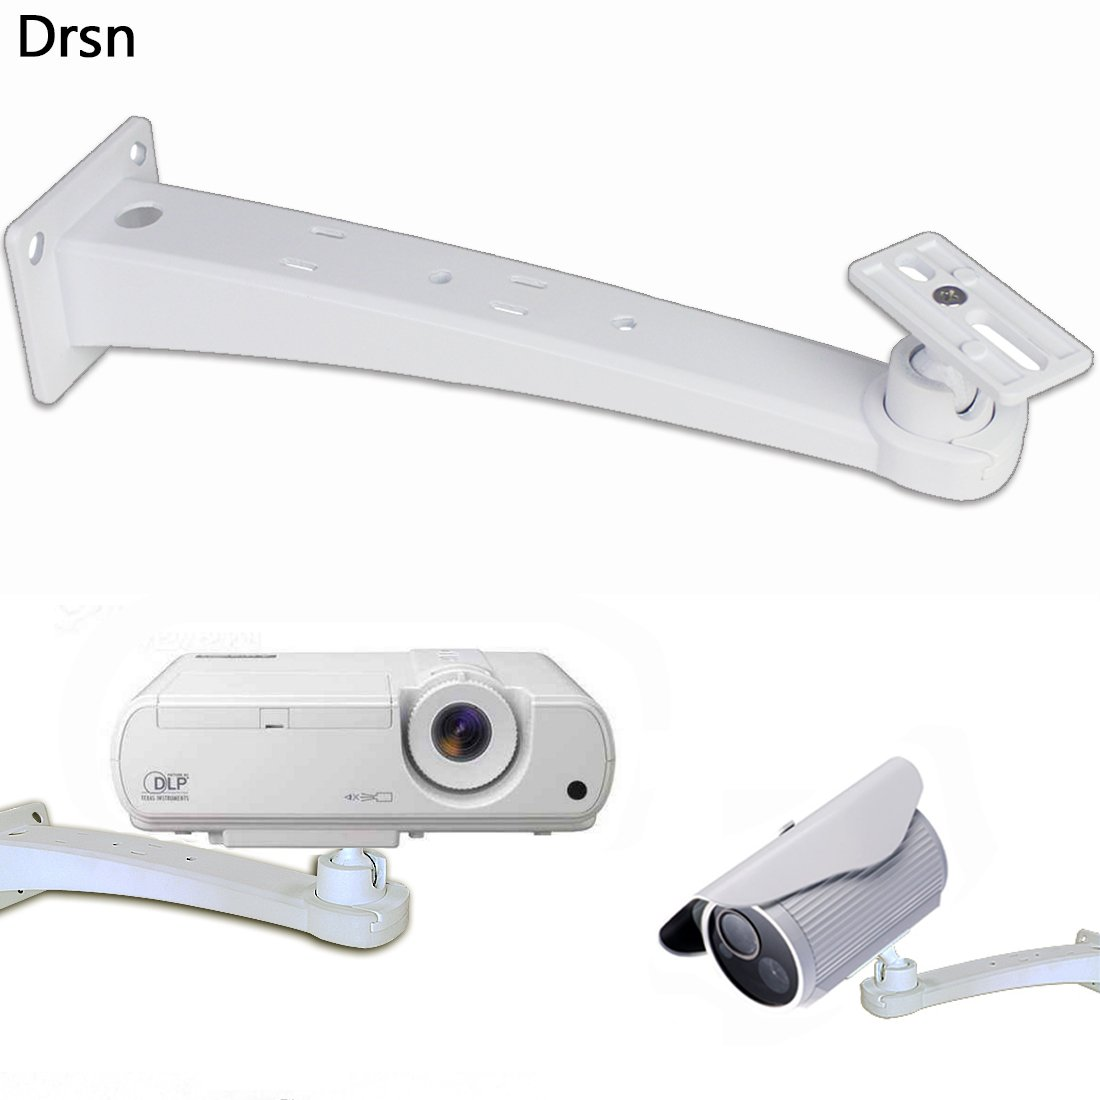 Drsn Universal Mini Projector Mount Drop Ceiling Projector Mount Angle Adjustable Wall Mount Length 175mm/6.88in Load 11.02lb/5kg 360° Rotatable for Projector CCTV DVR Camera 2018-New-Projector-Mount-6.88in